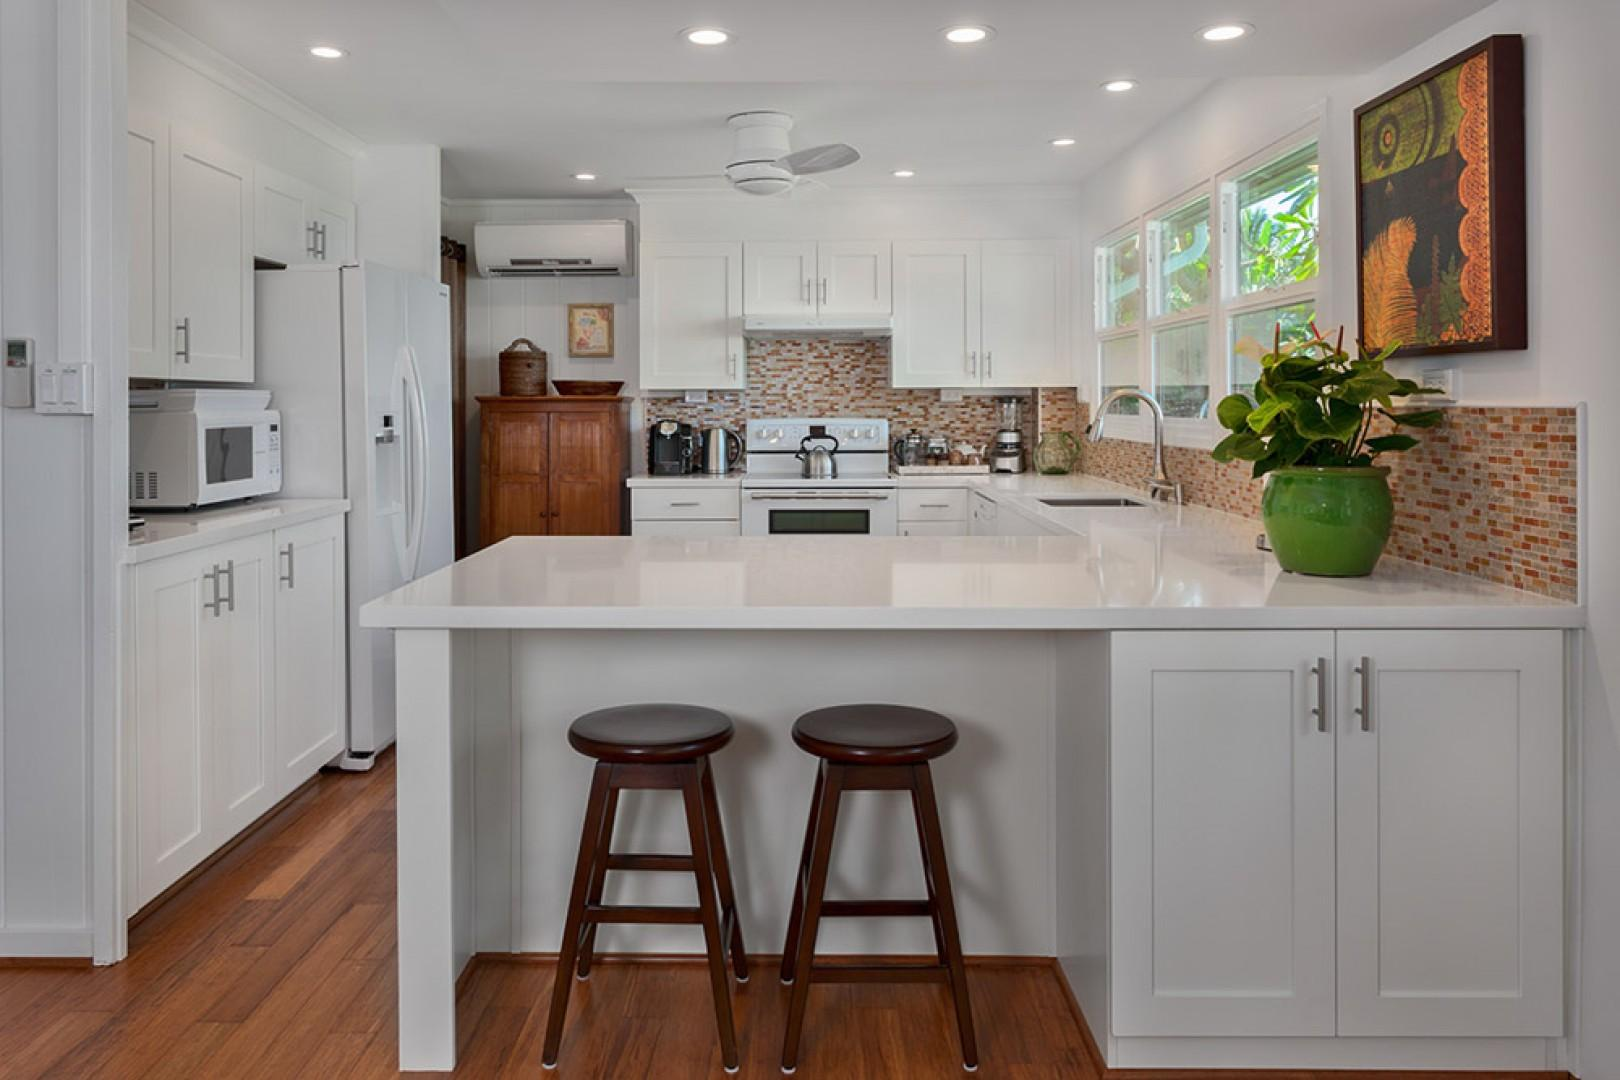 Wailea Sunset Bungalow - Fully Equipped Ocean View Kitchen with Breakfast Bar. Kitchen Windows Now Have Woven Wood Blinds.